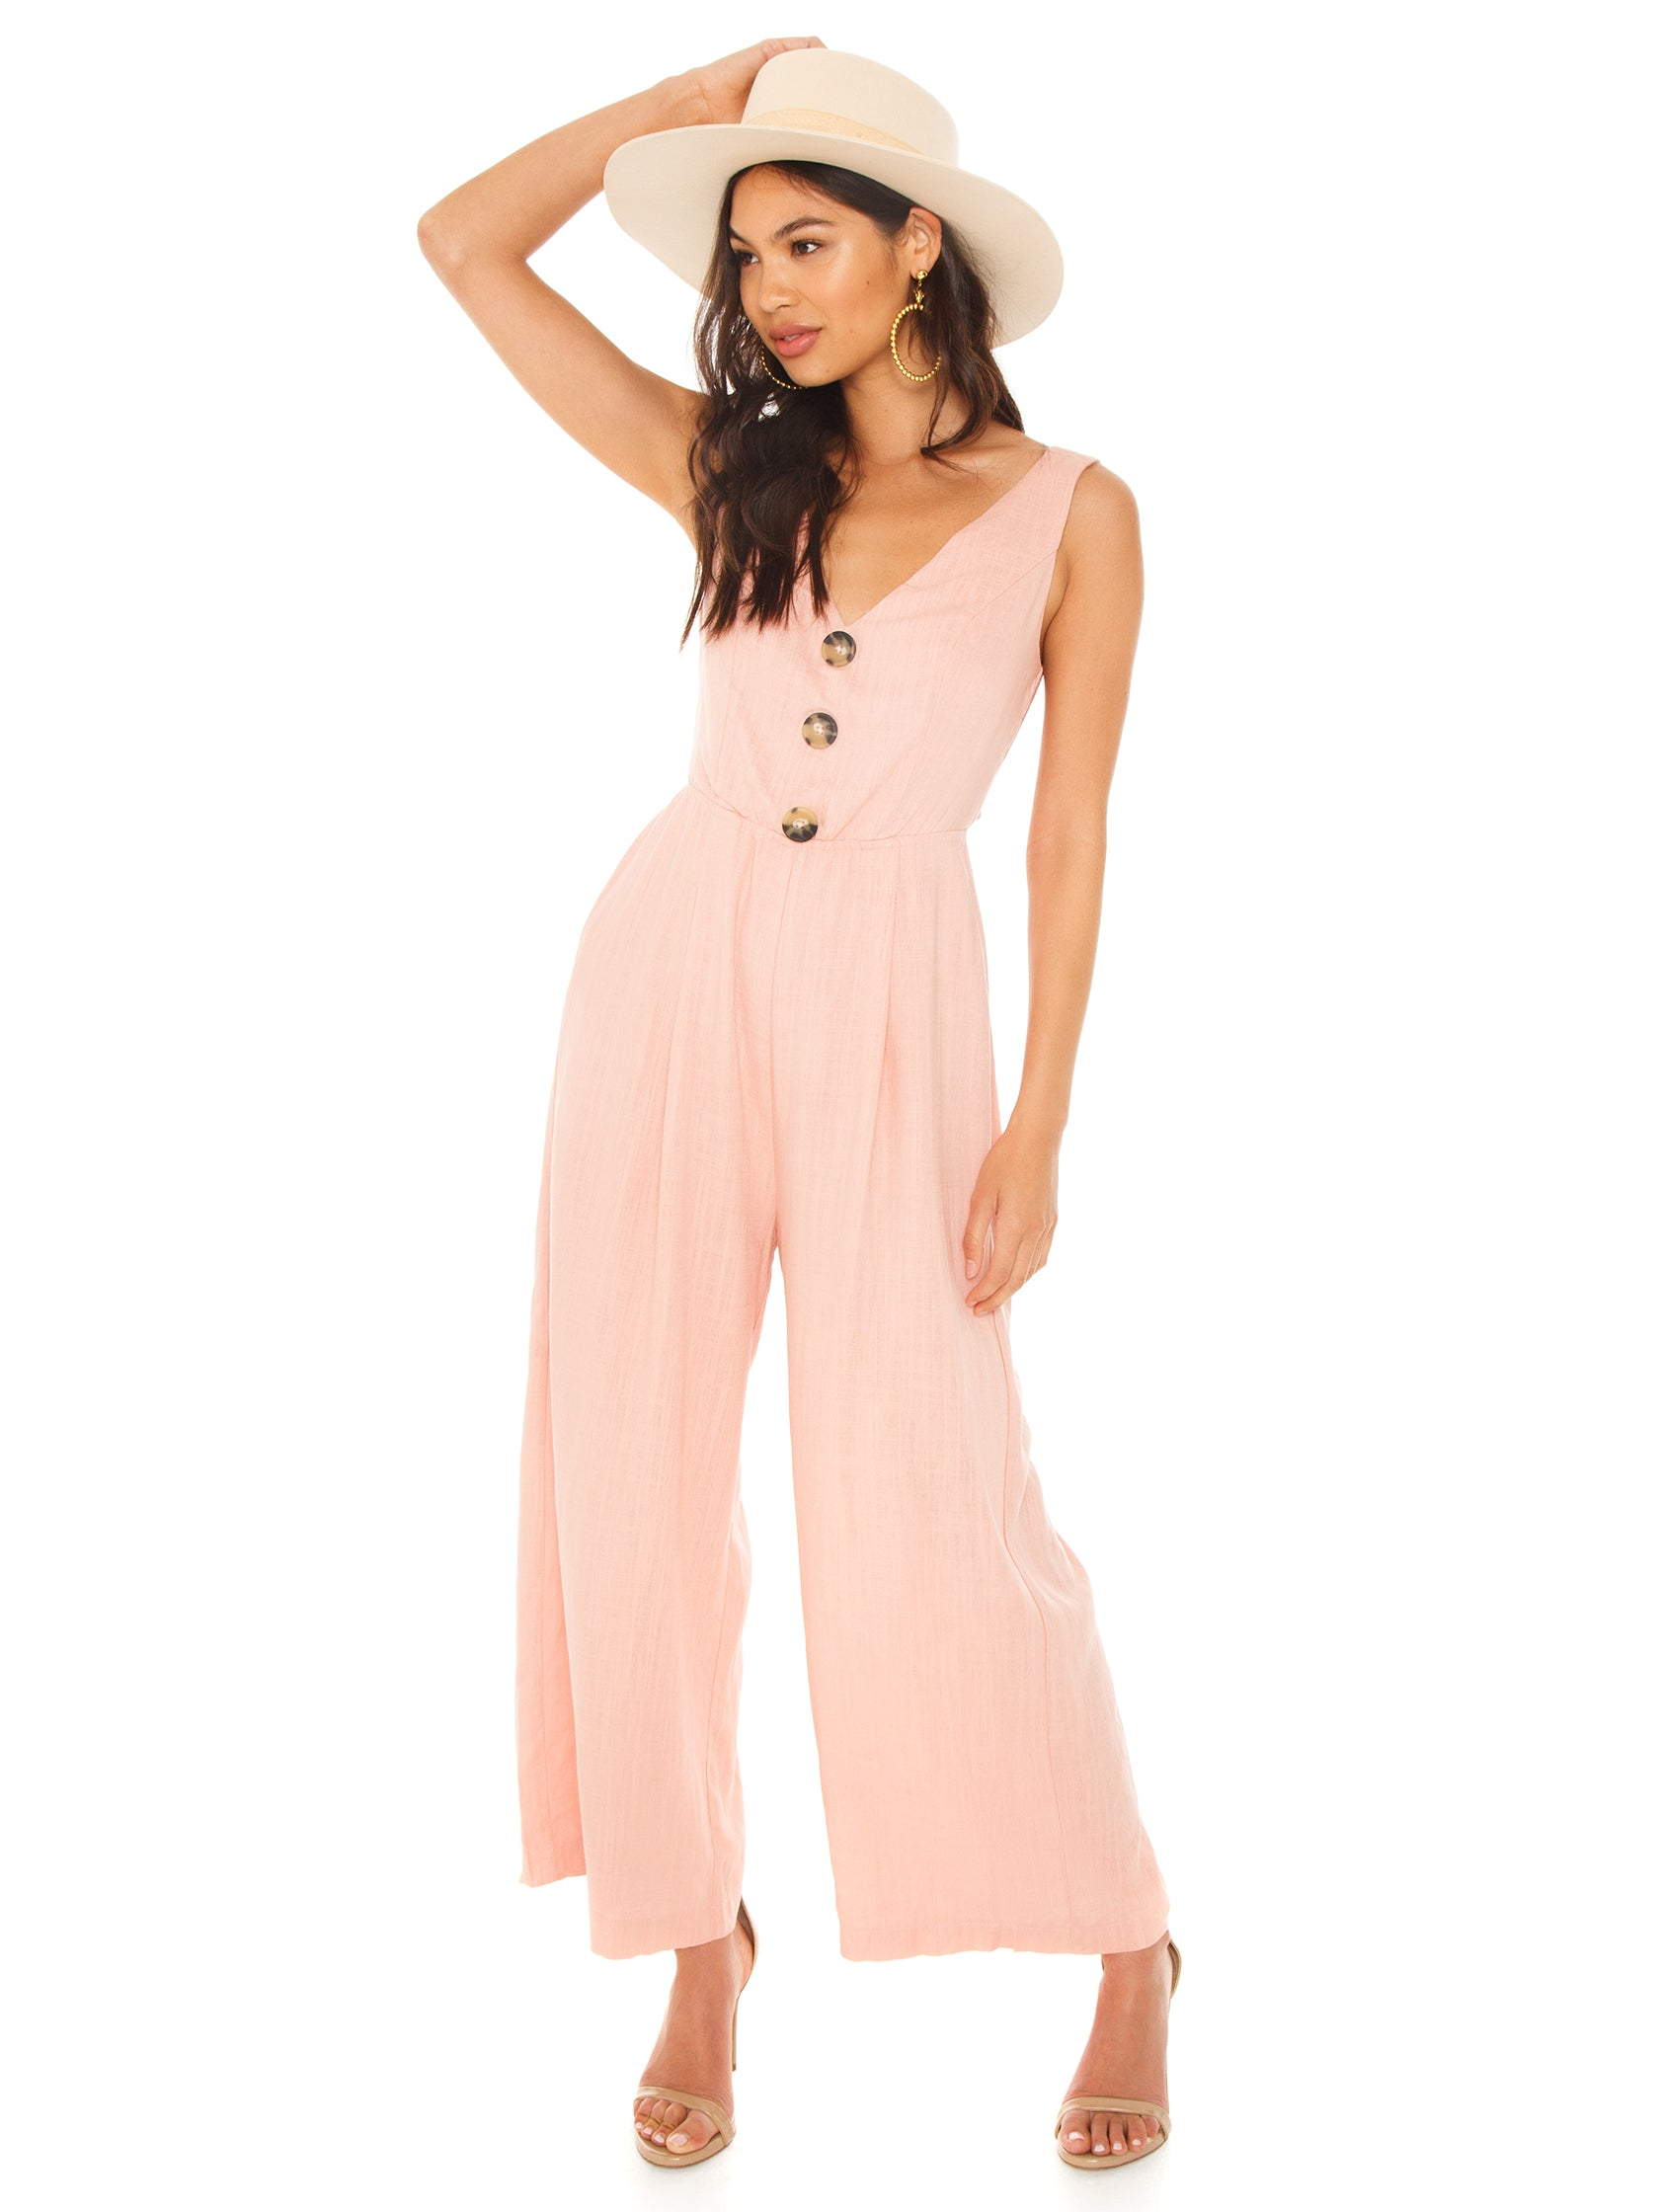 Girl outfit in a jumpsuit rental from Lost In Lunar called Maya Pantsuit